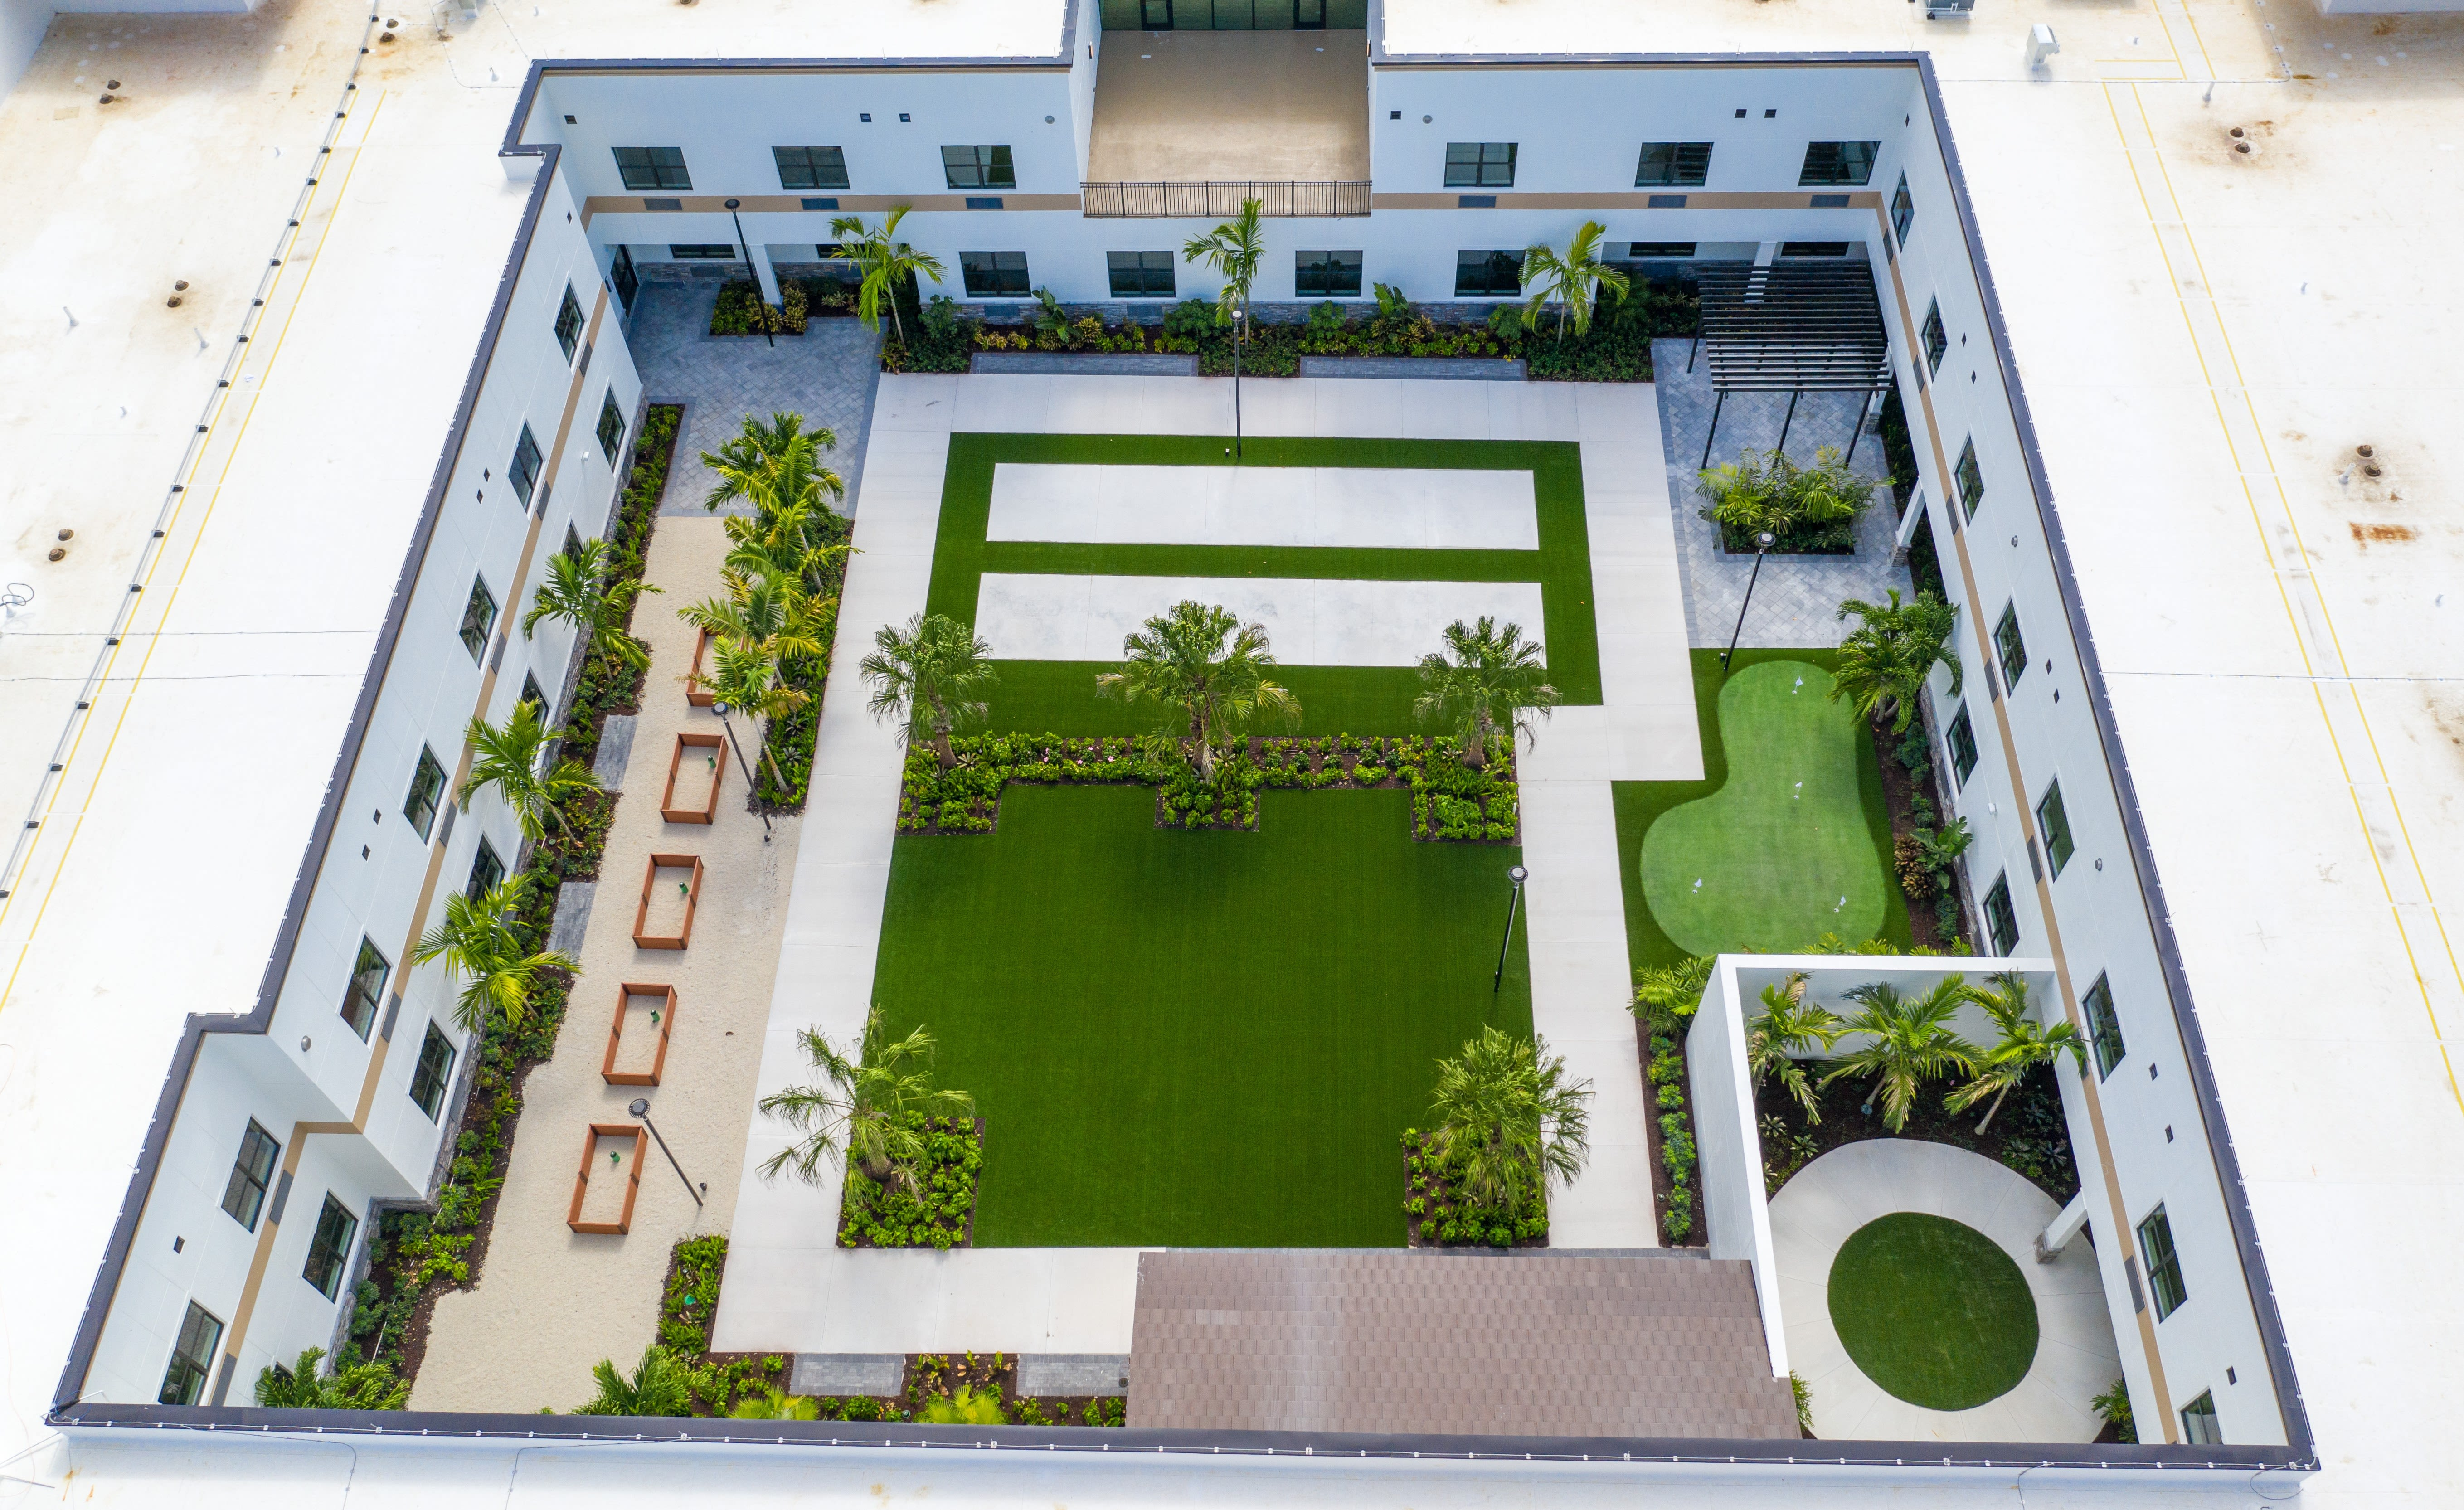 See what other amenities we offer at Inspired Living Royal Palm Beach in Royal Palm Beach, Florida